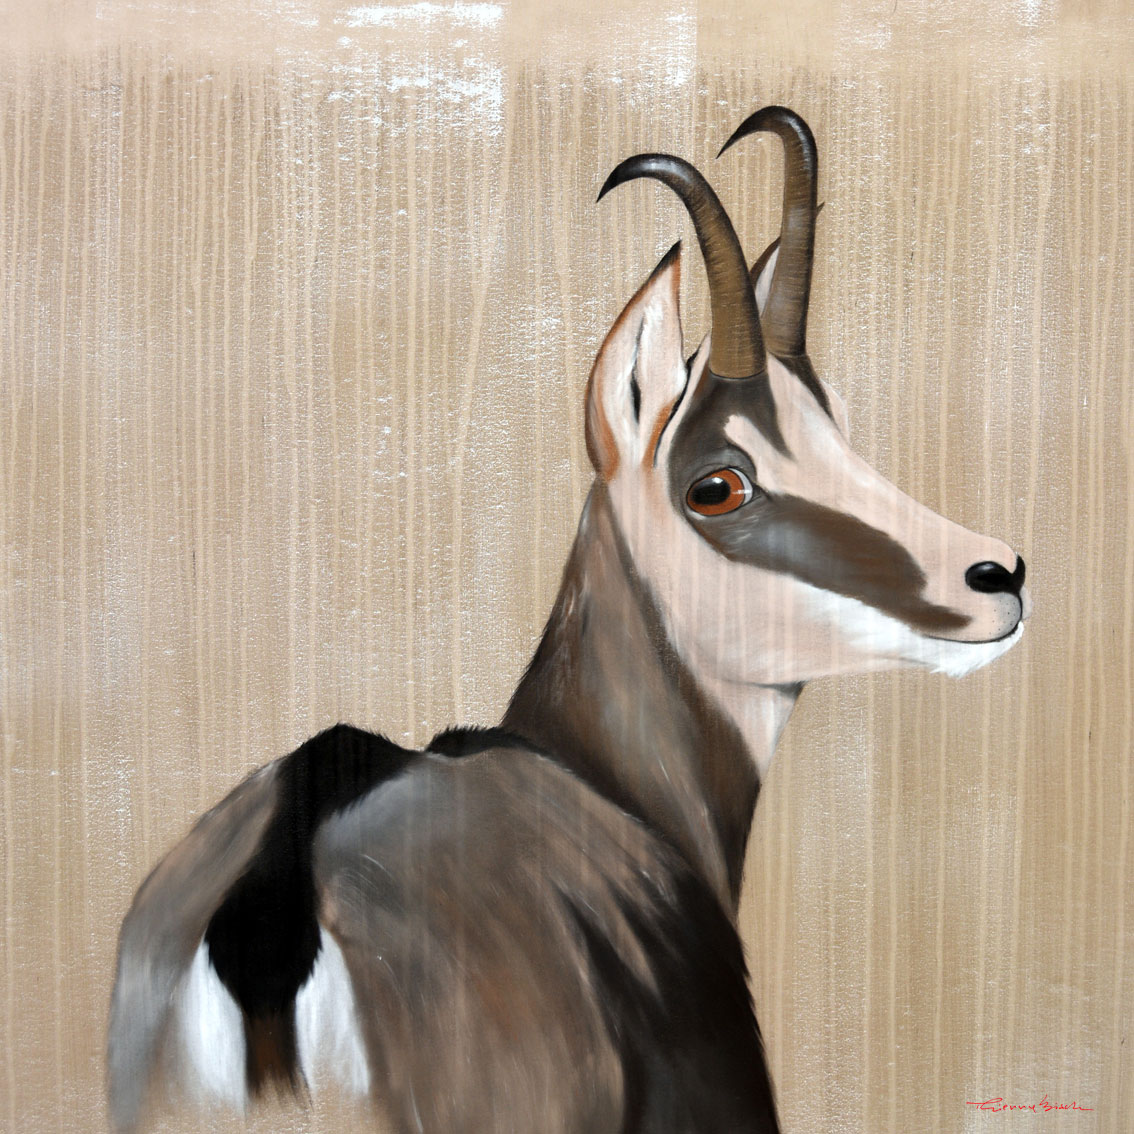 MOTIONLESS CHAMOIS CHAMOIS Animal painting by Thierry Bisch pets wildlife artist painter canvas art decoration